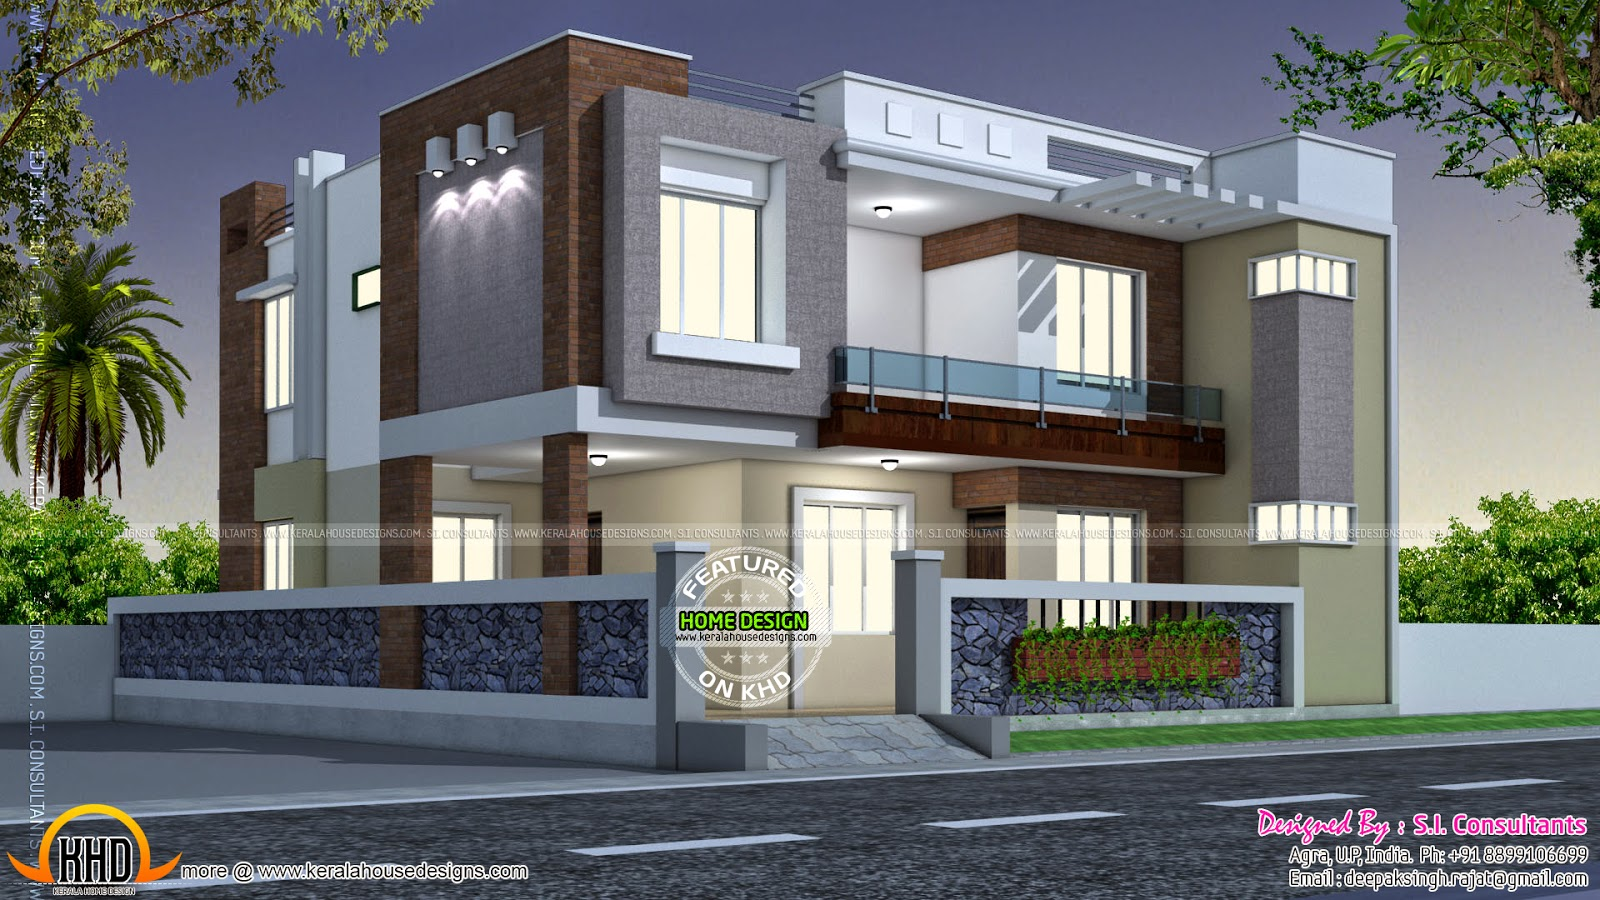 House plans and design modern house plans for india for Contemporary house plans 2015